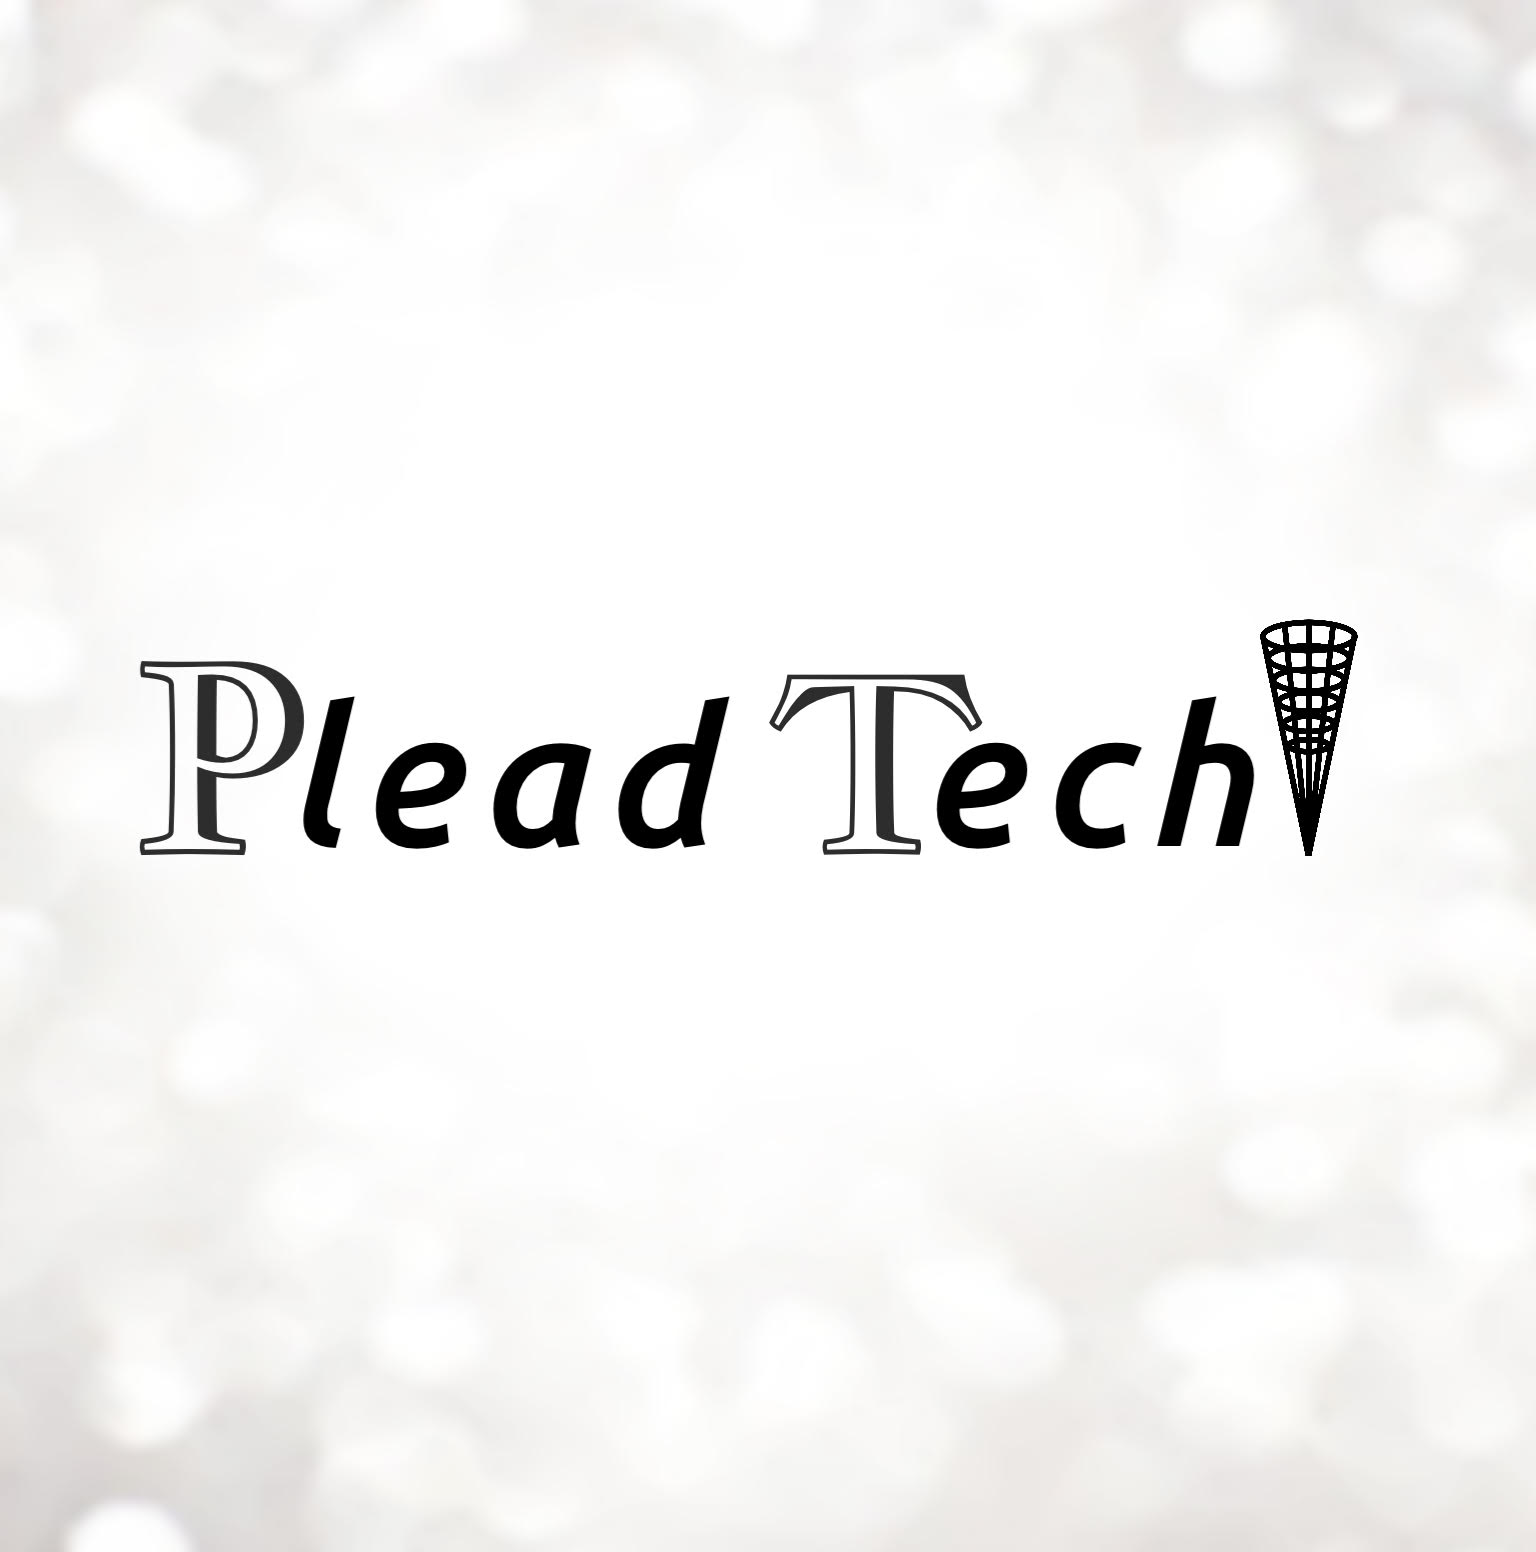 Plead the Technology